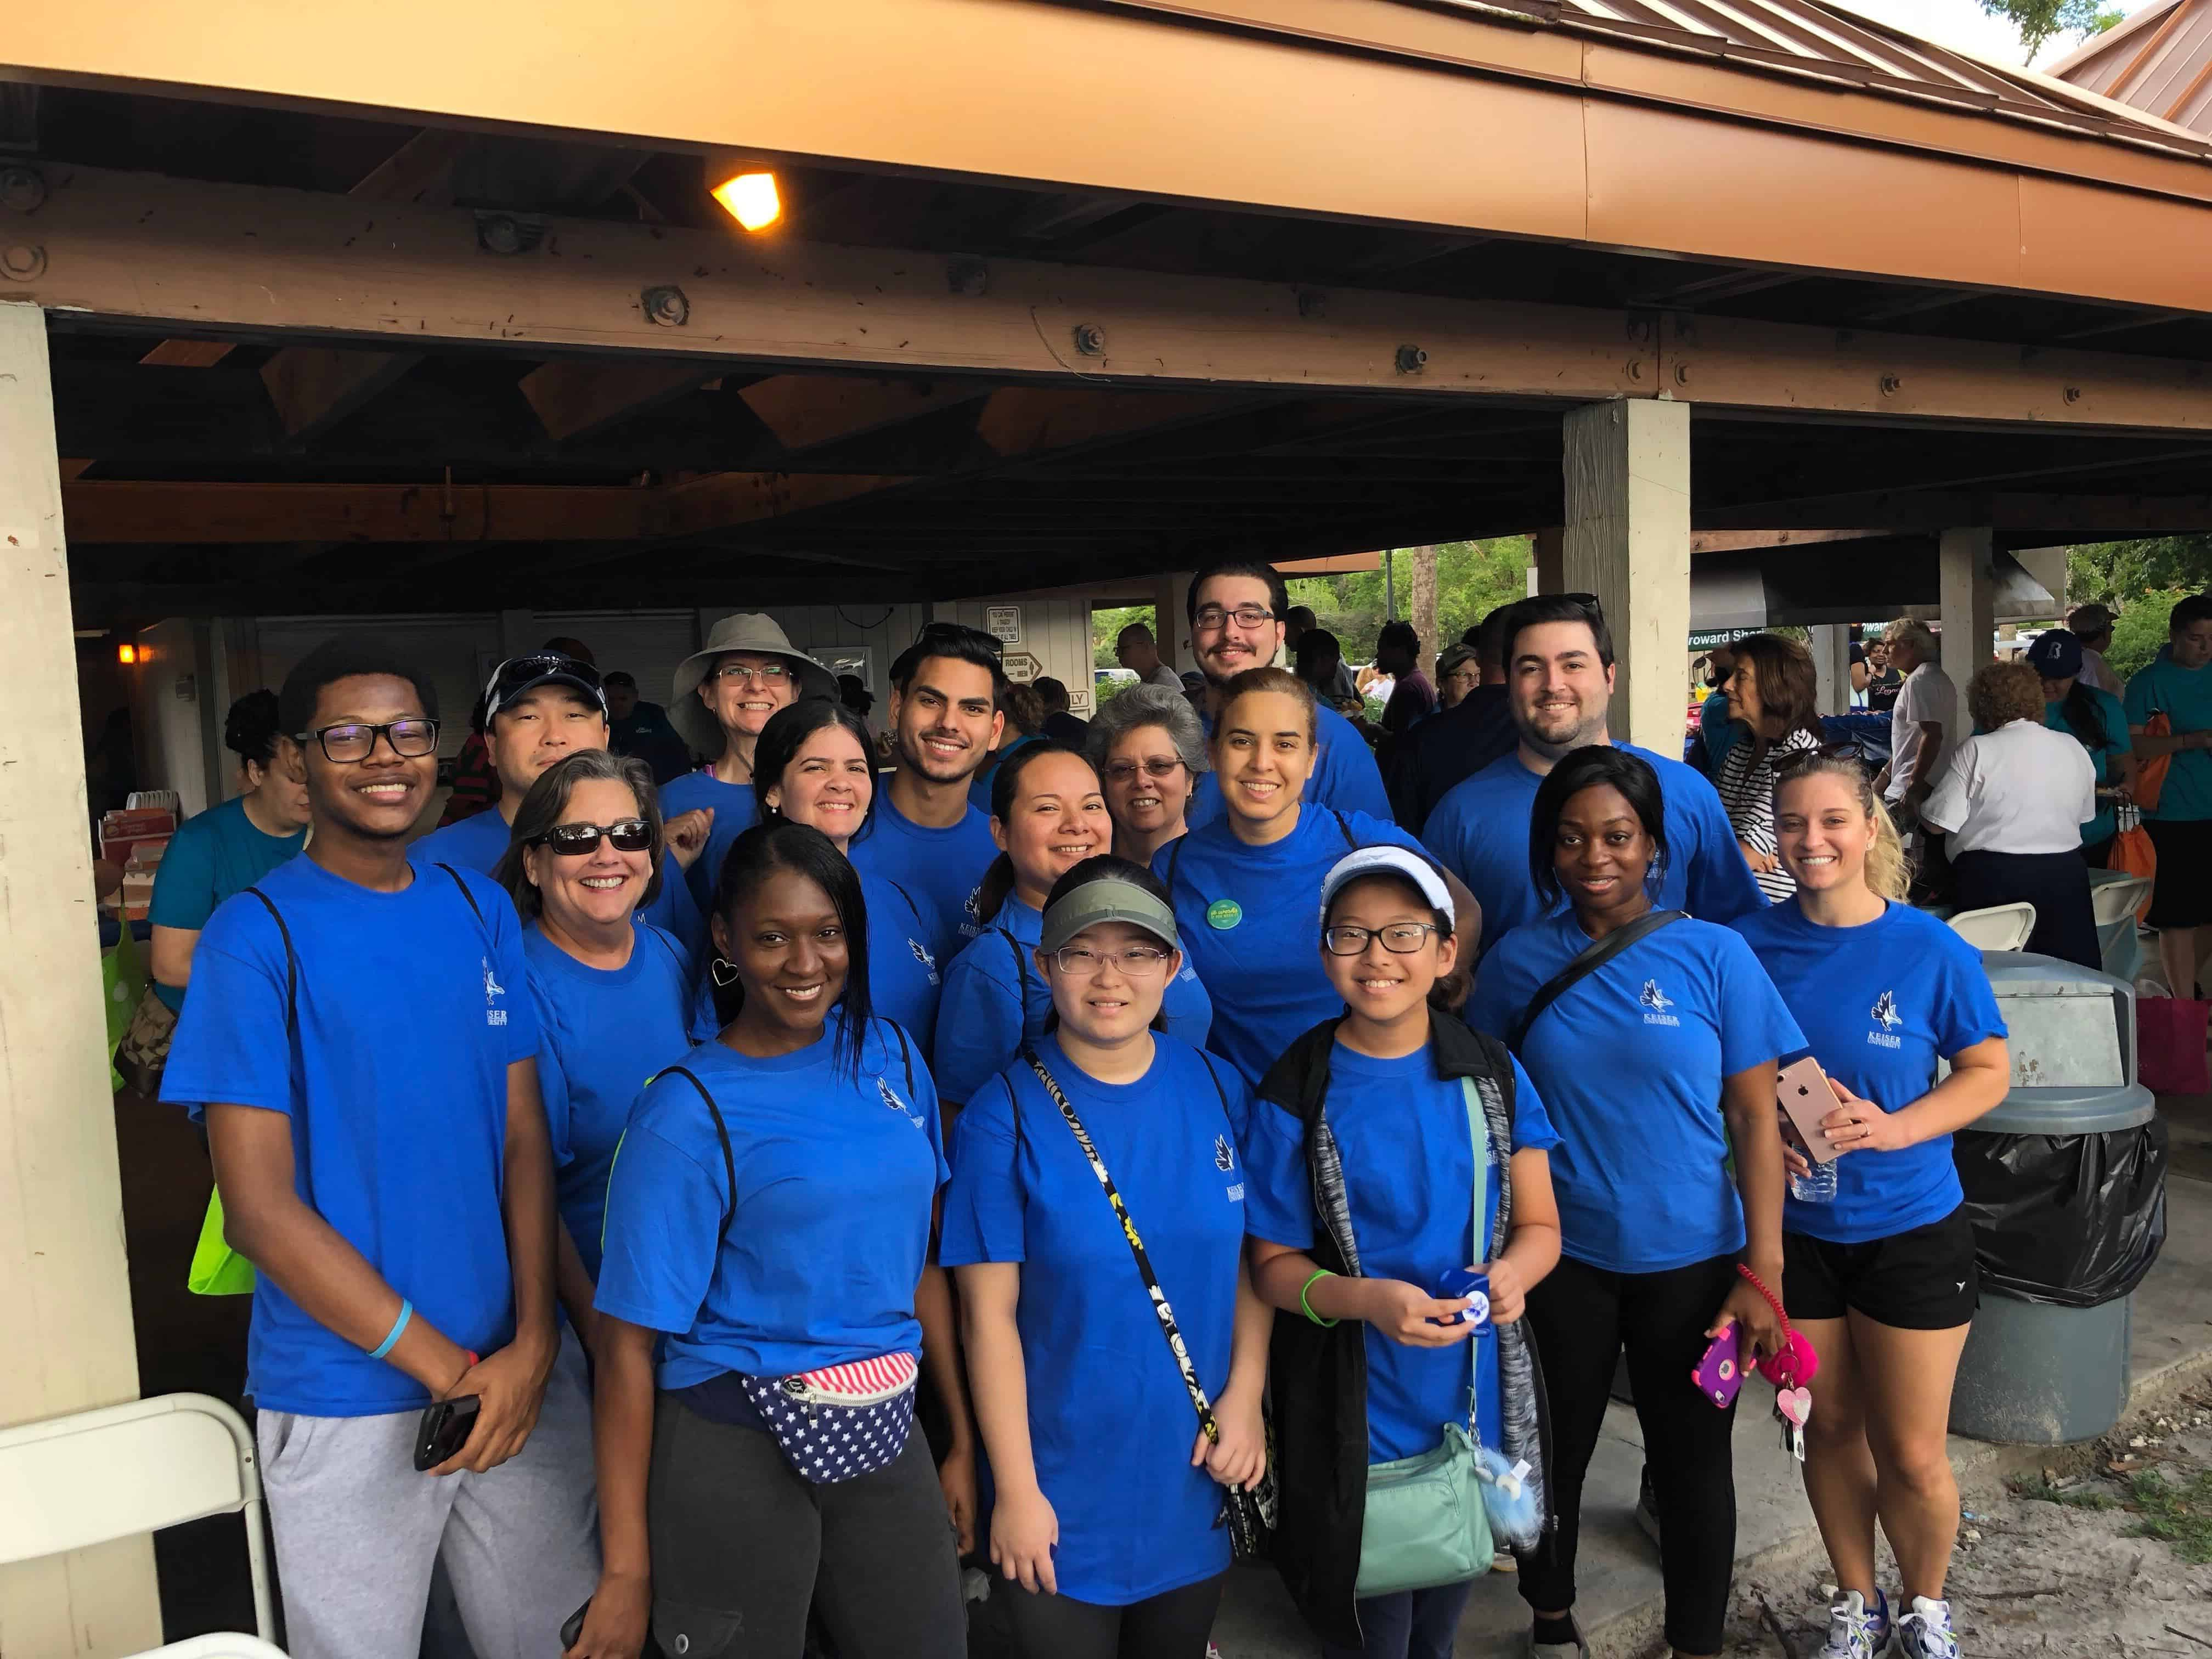 Graduate School Participates in National Alliance for Mental Illness Walk